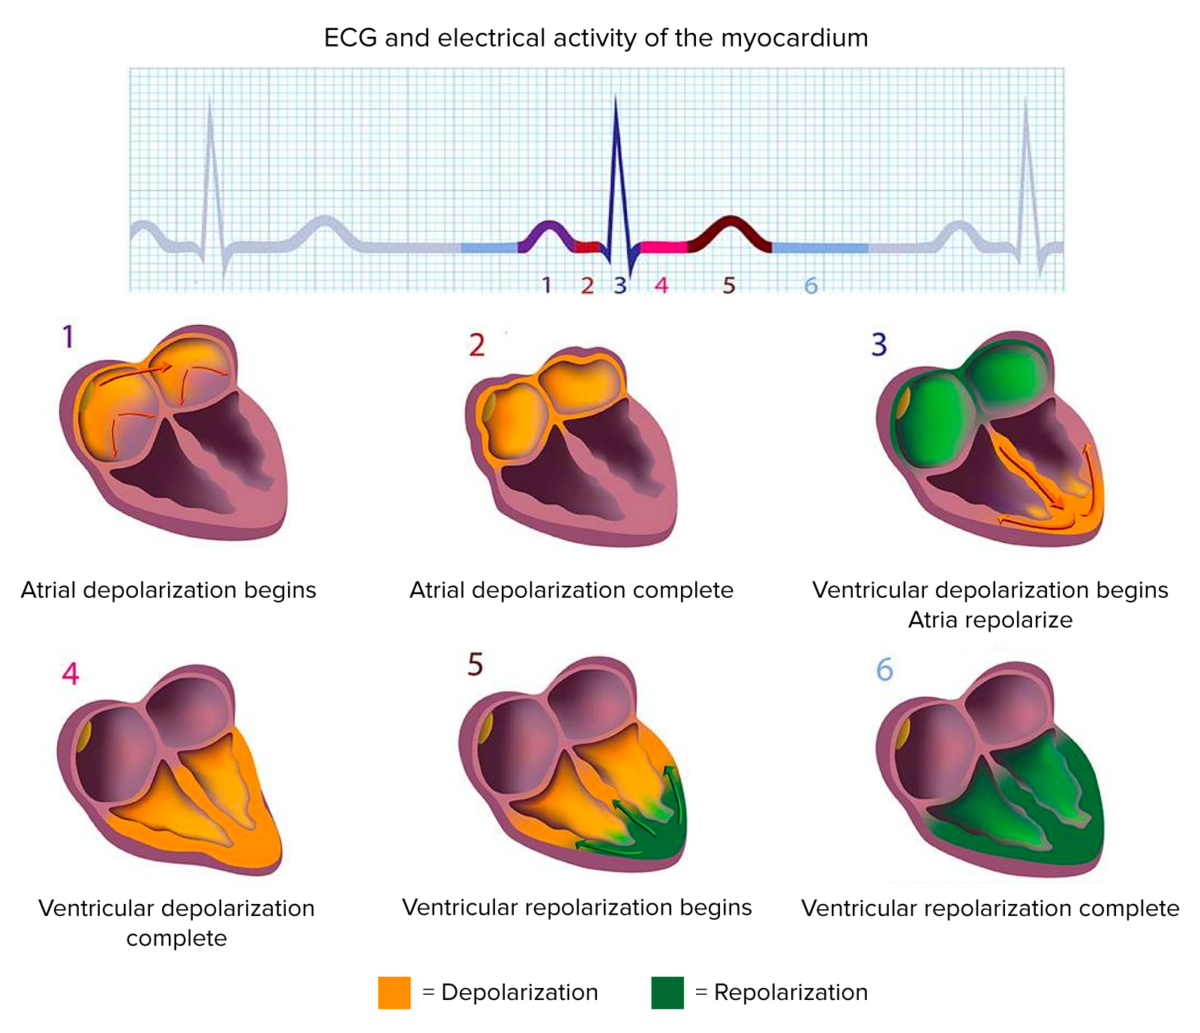 ECG and electrical activity of the myocardium